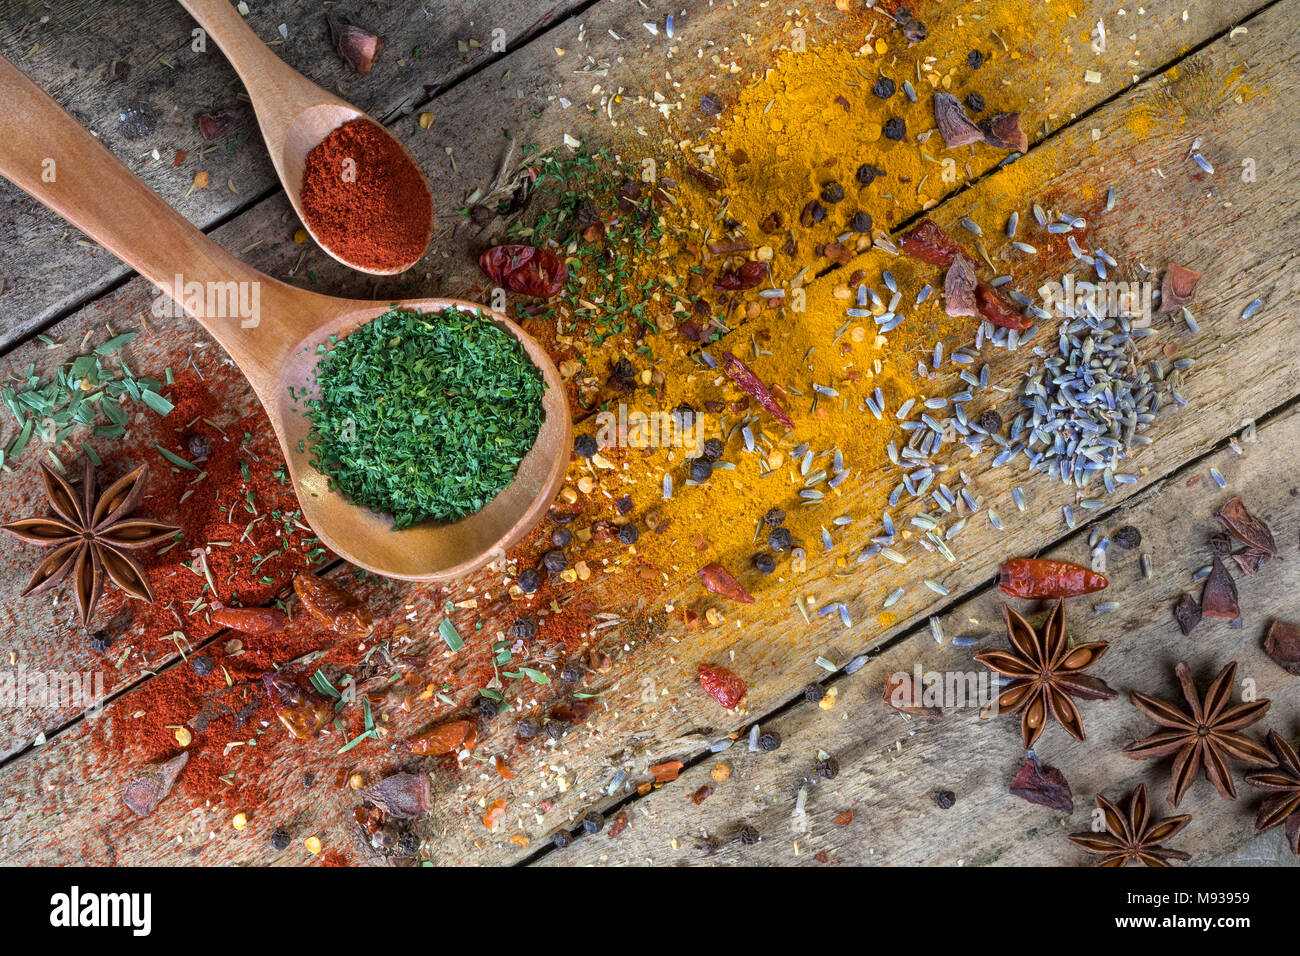 Herbs and Spices - used to add flavor and seasoning to cooking. - Stock Image